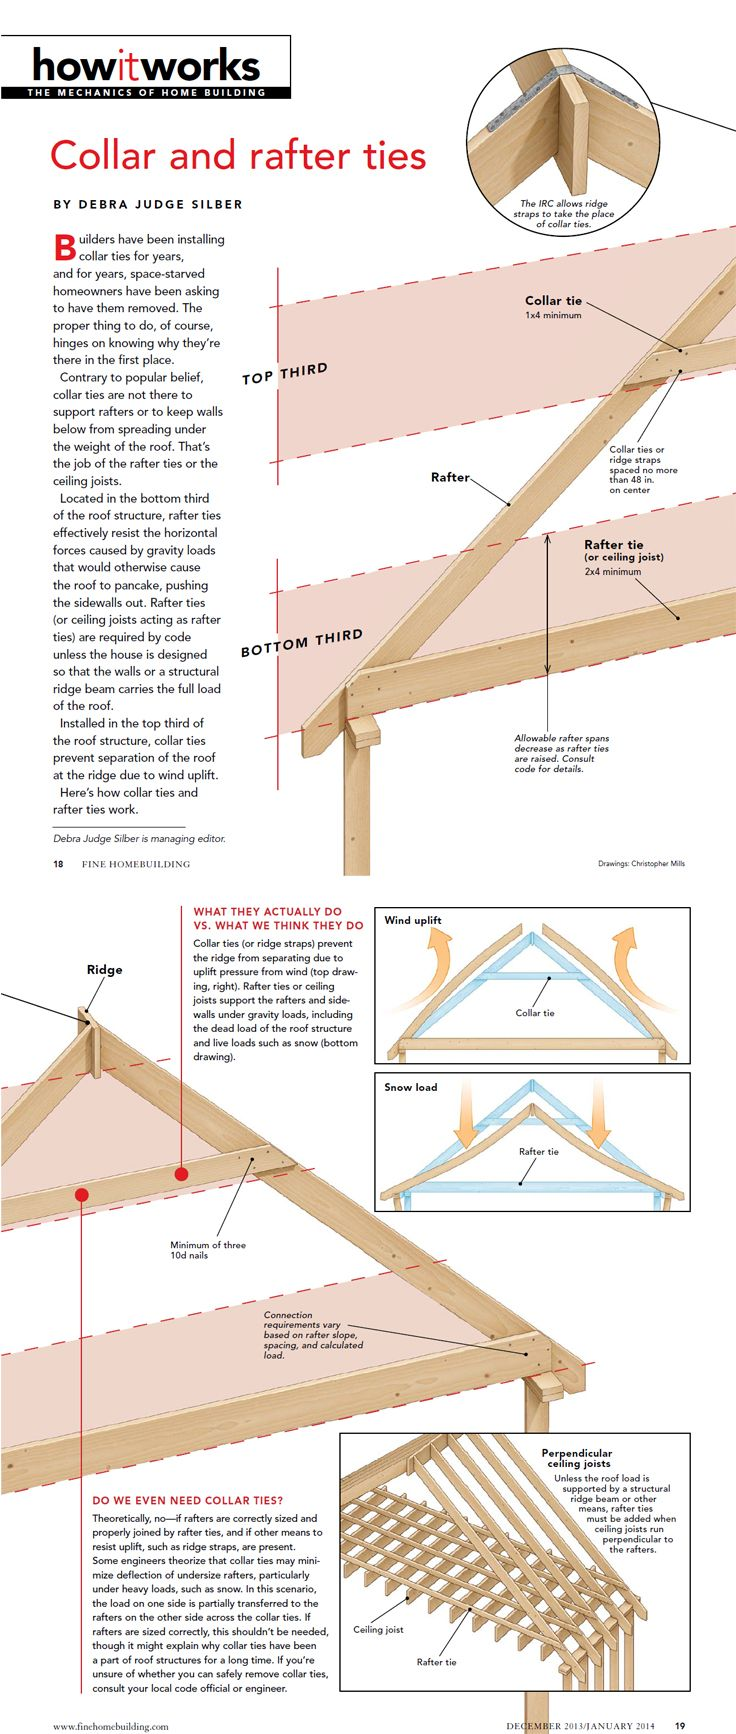 How It Works Collar And Rafter Ties Building A House Roof Trusses Shed Construction